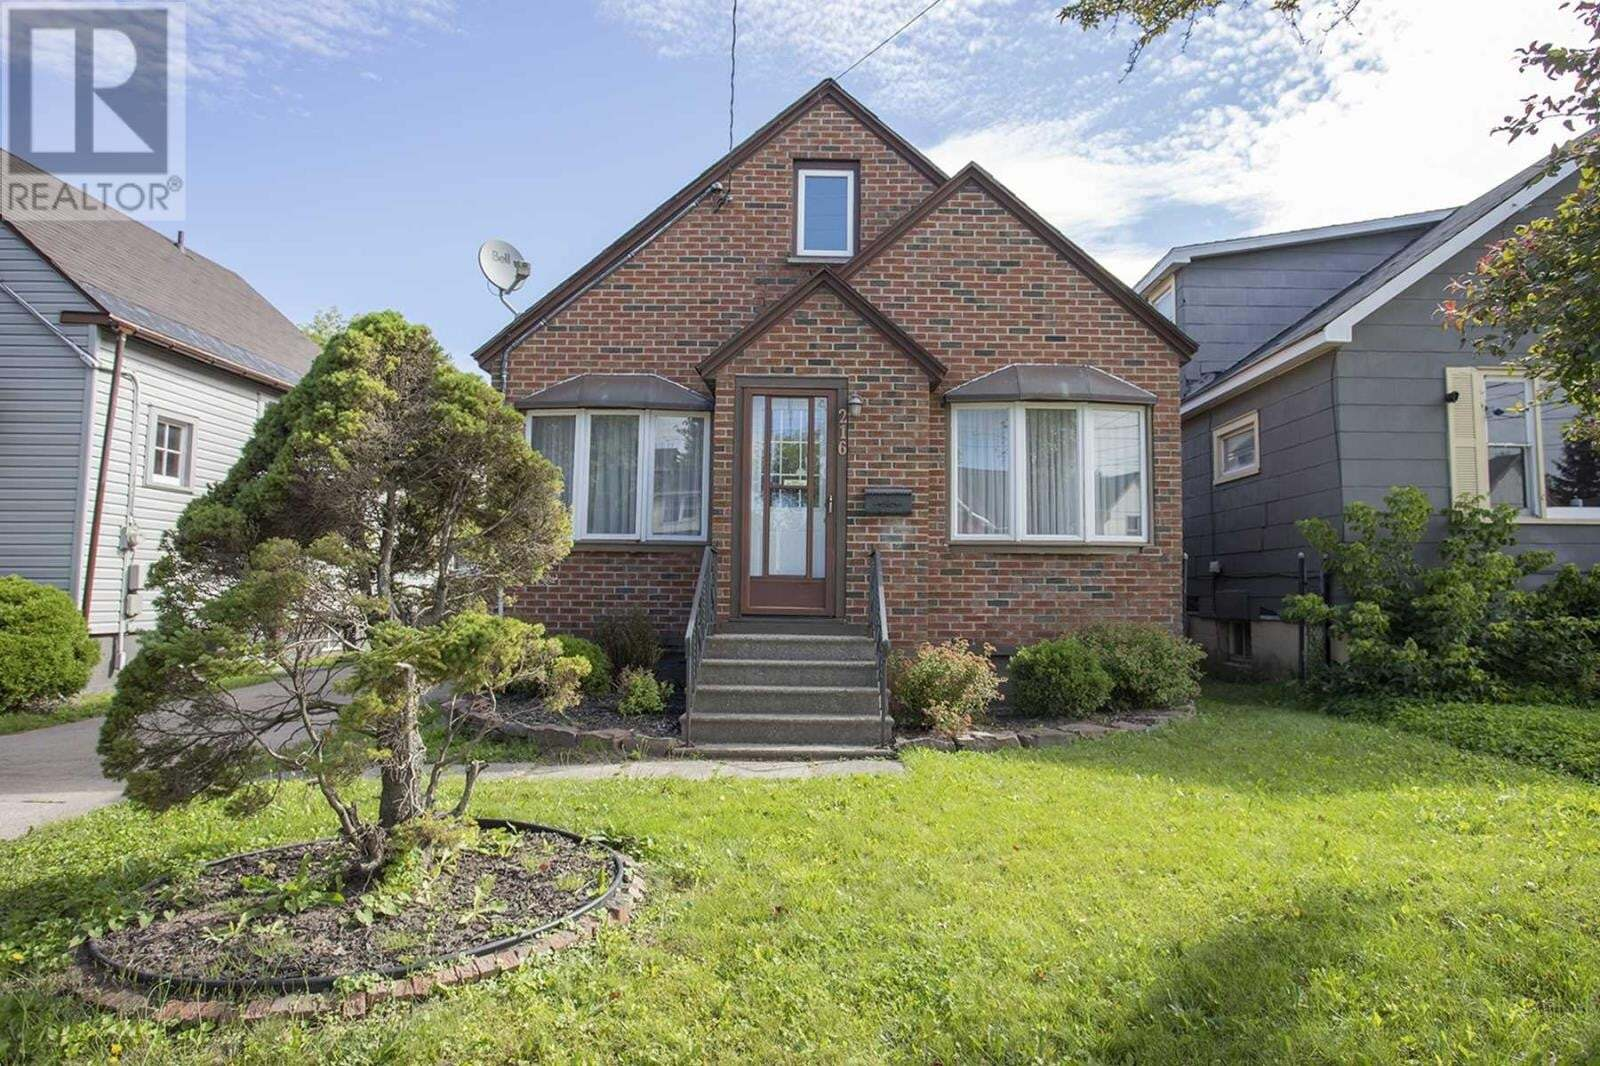 House for sale at 216 Wellington St E Sault Ste. Marie Ontario - MLS: SM129330